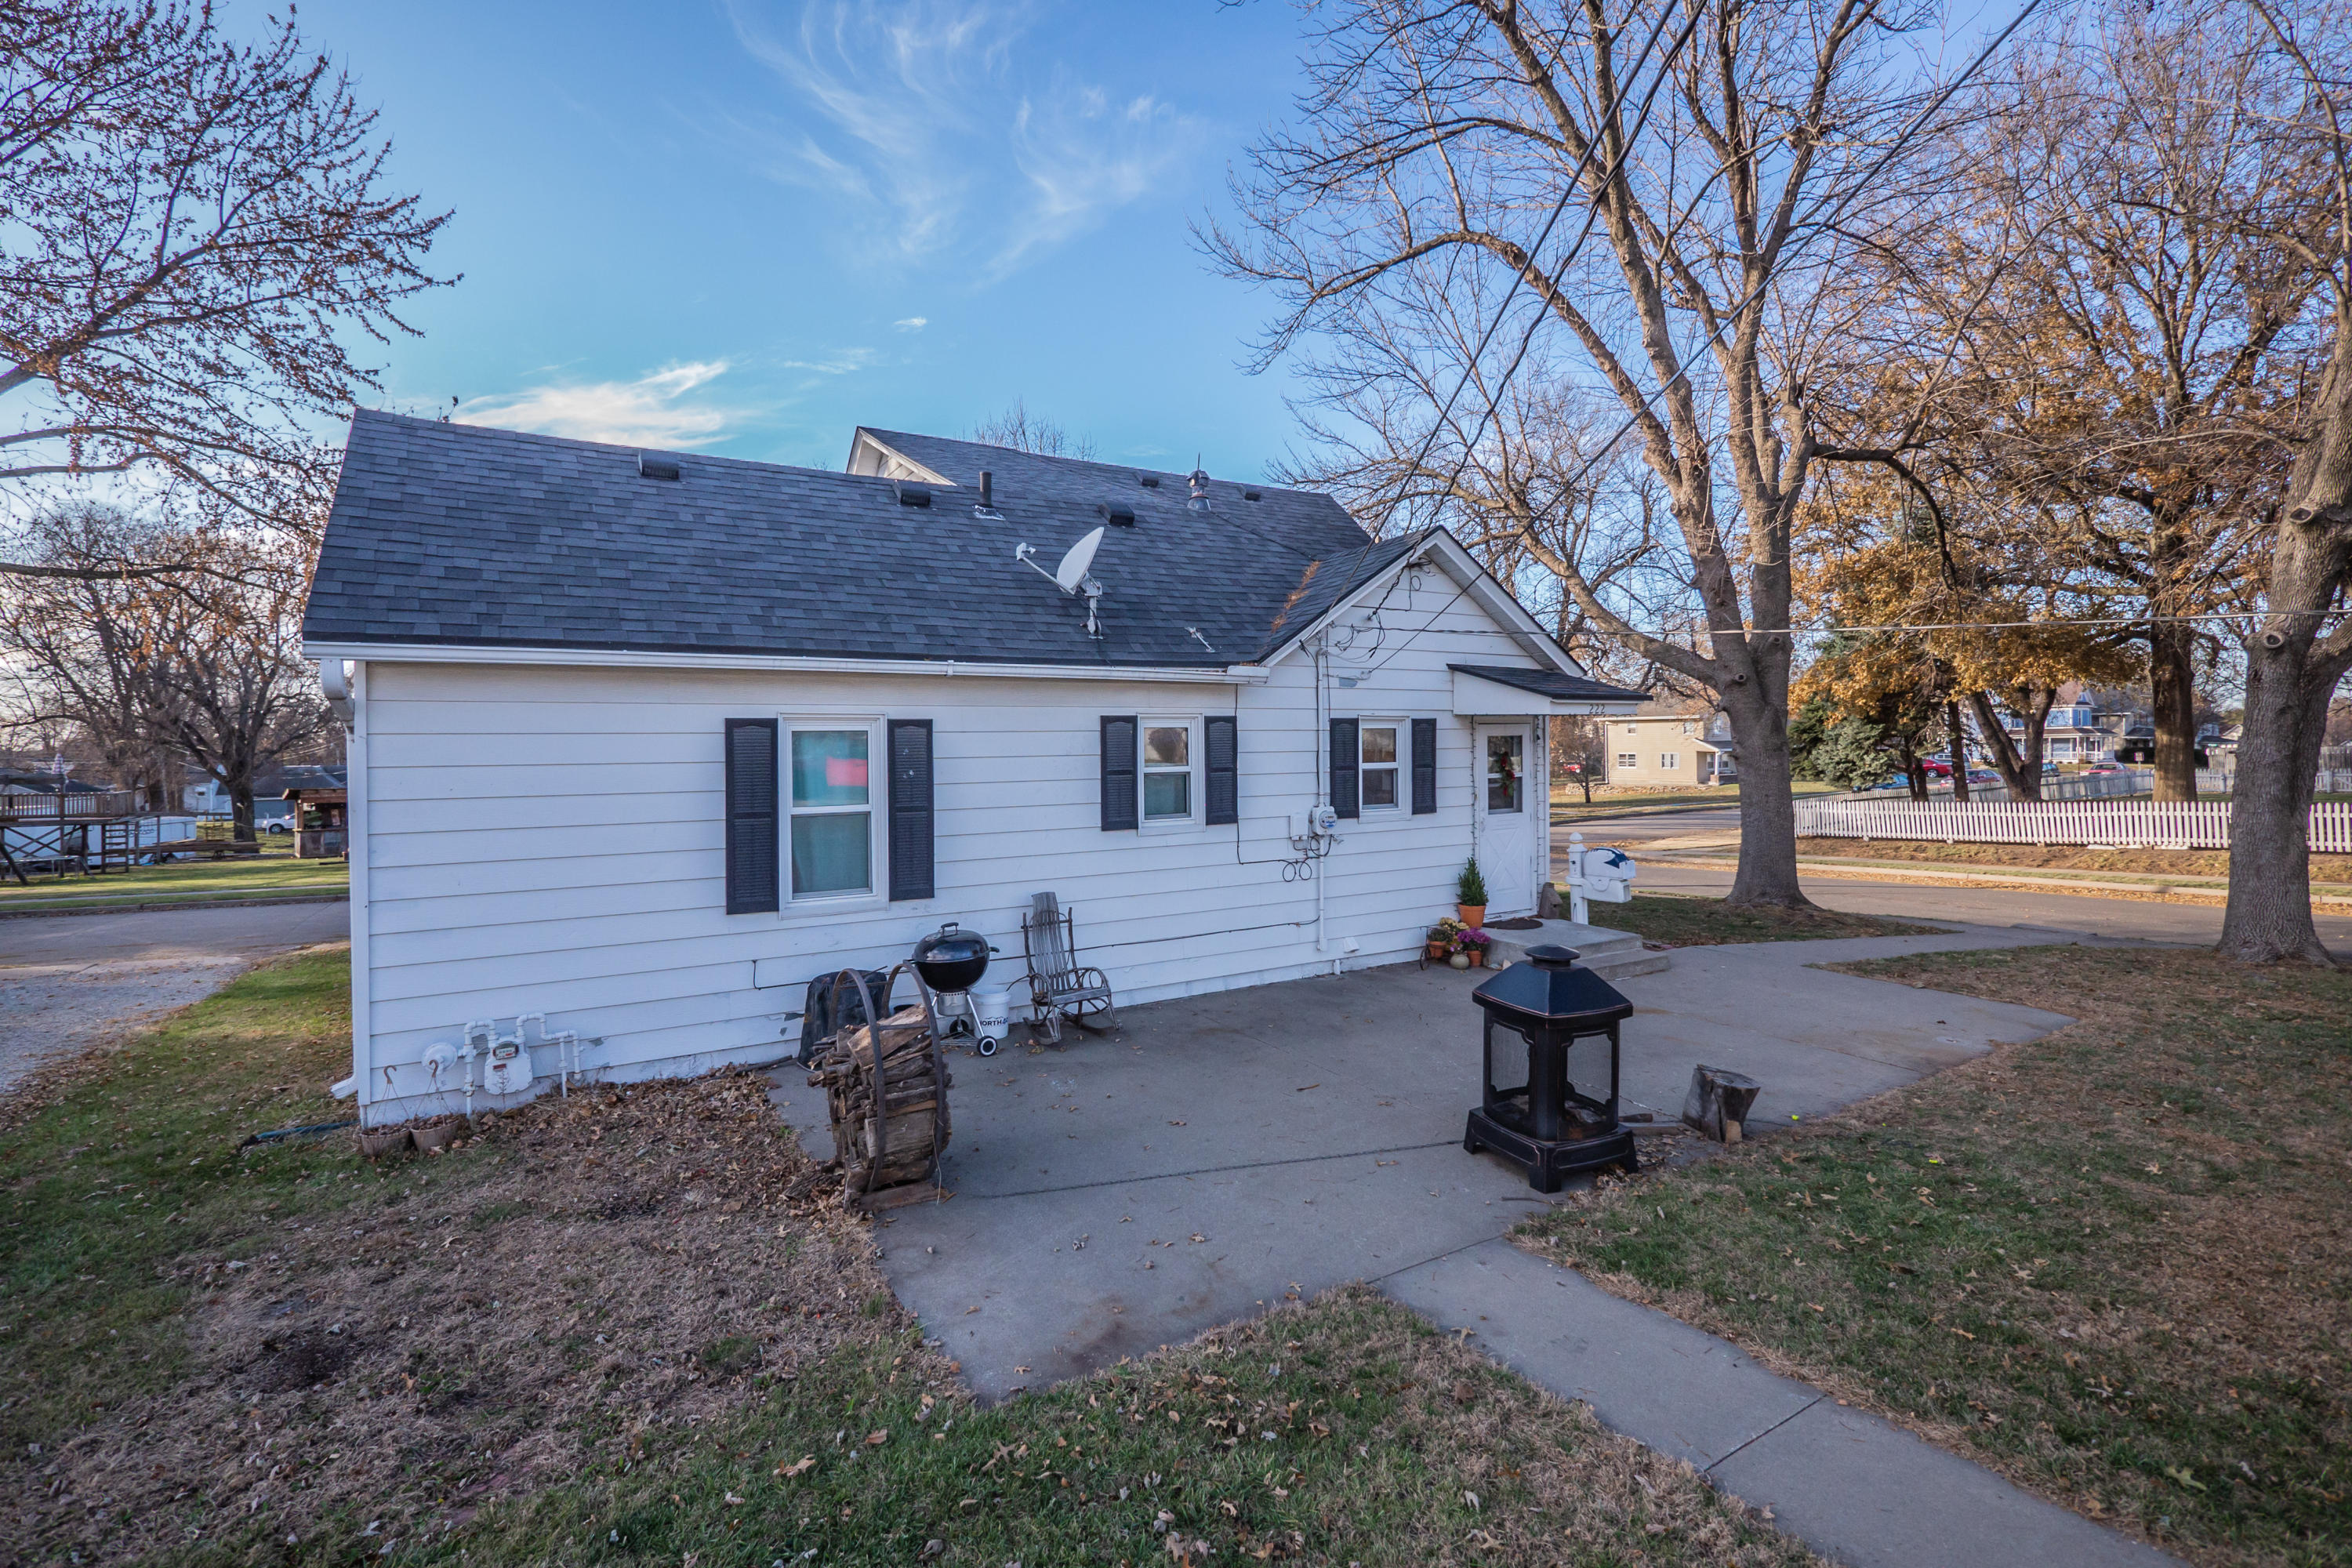 222 W EDWARDS ST, Maryville, Missouri 64468, 3 Bedrooms Bedrooms, ,1 BathroomBathrooms,Residential,EDWARDS,3490